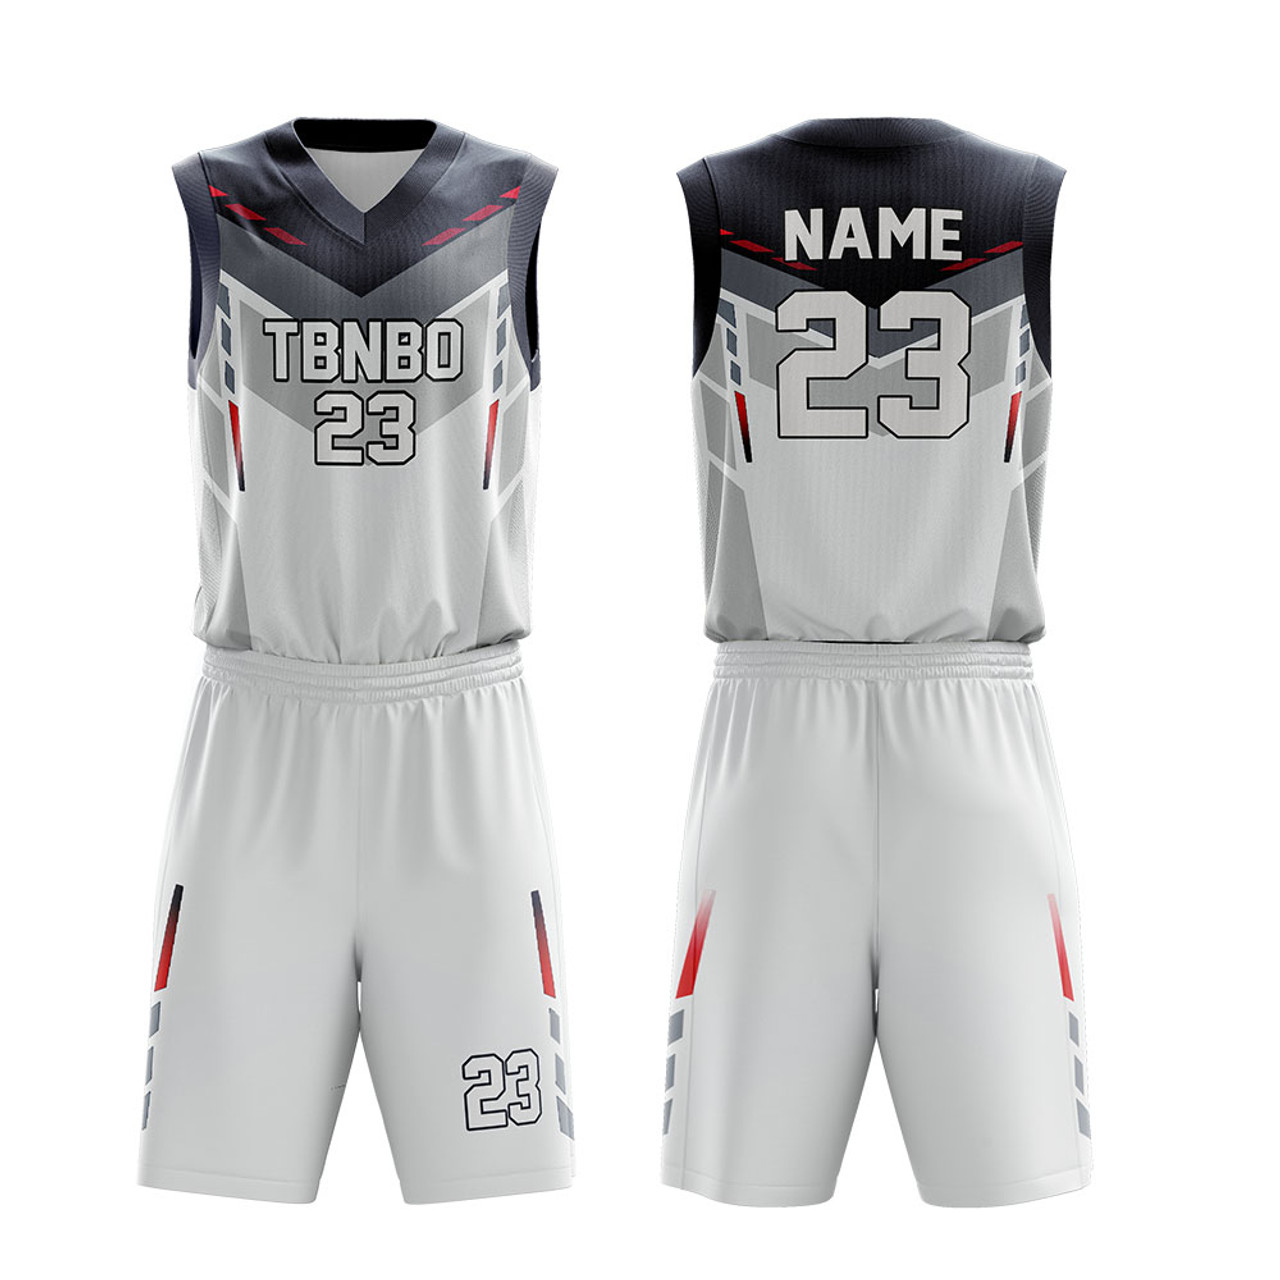 Custom Wholesale Basketball Watermark Customize Basketball Jersey Uniform Free Add Your Name And Number